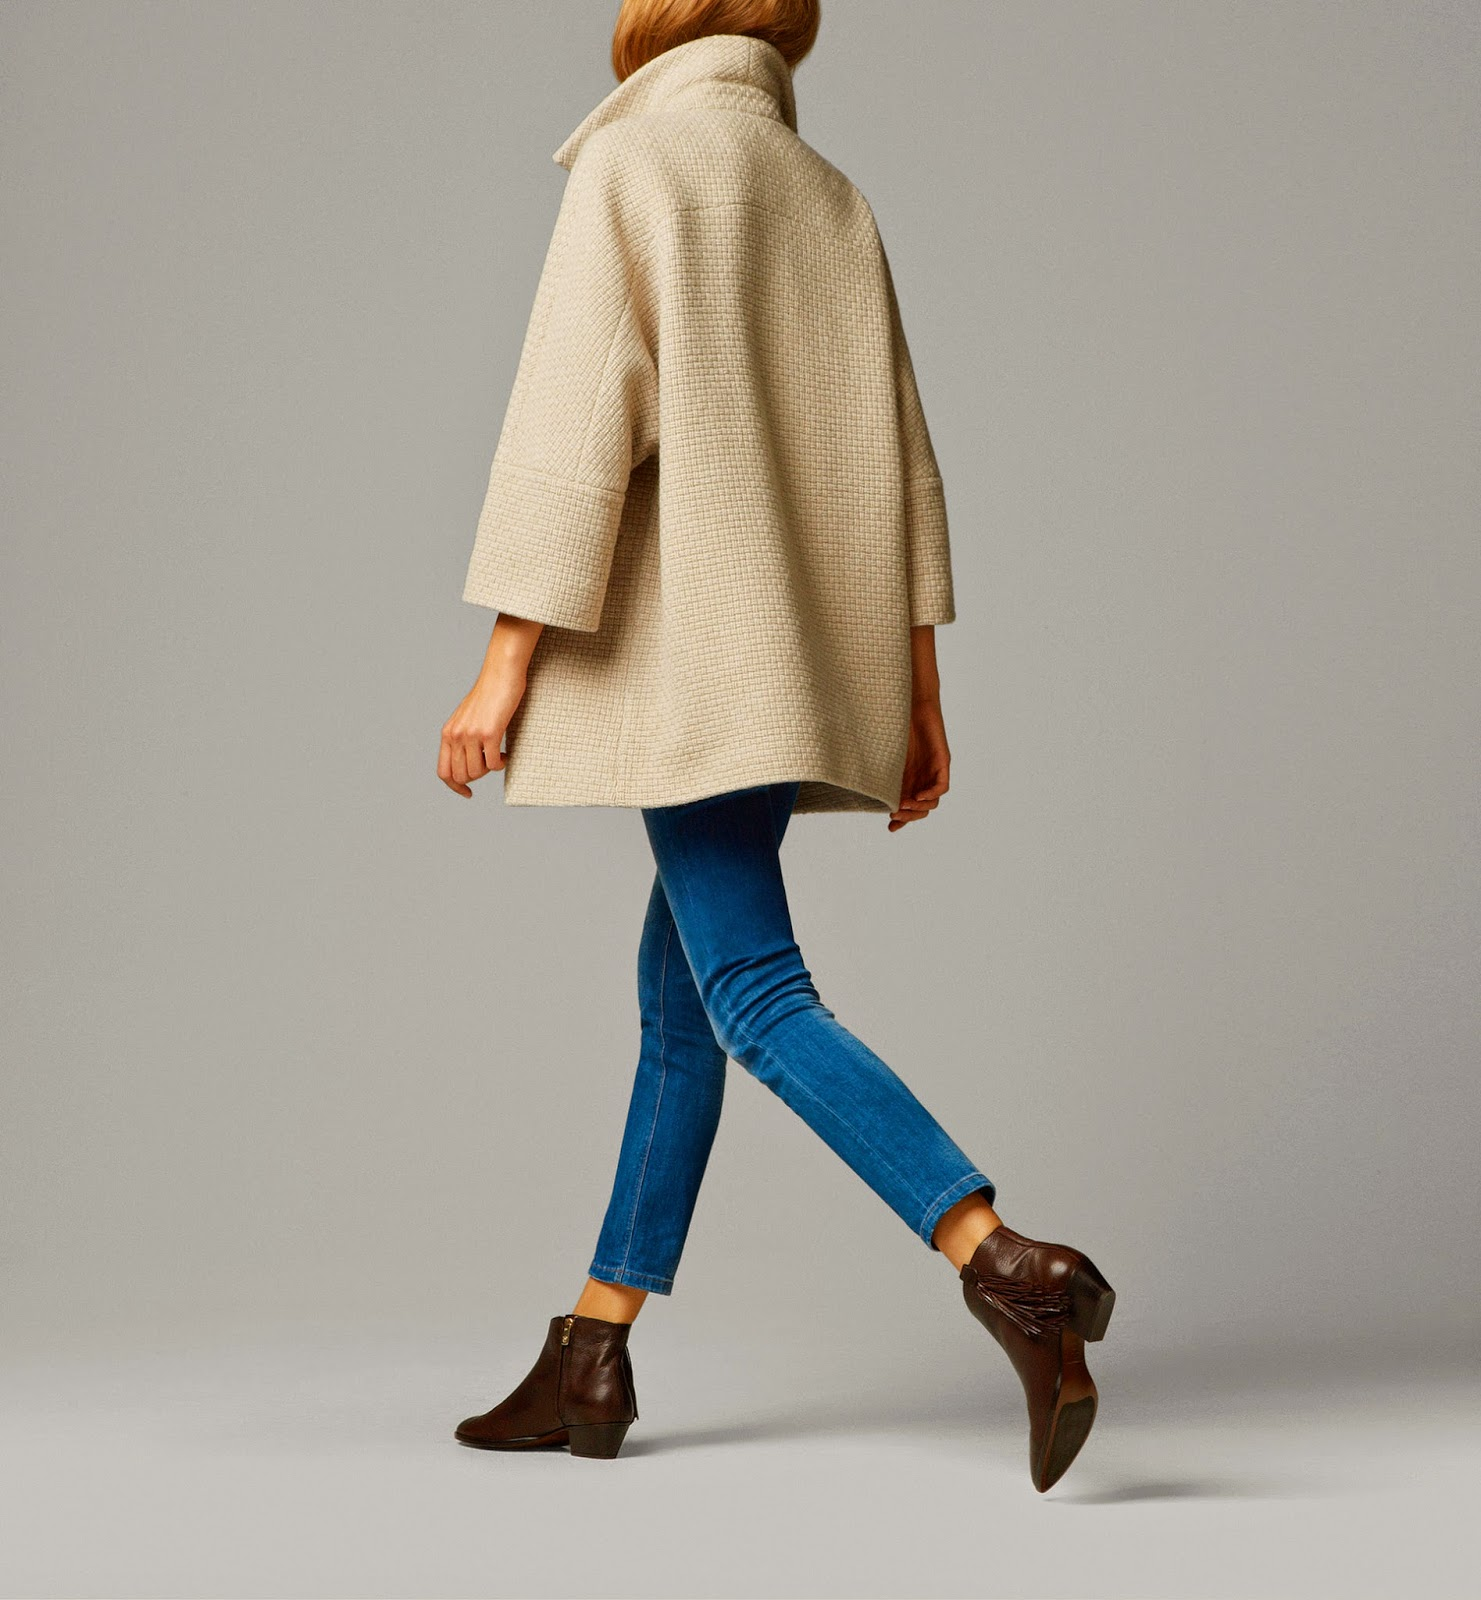 gorgeous coat ideal for someone with psoriasis